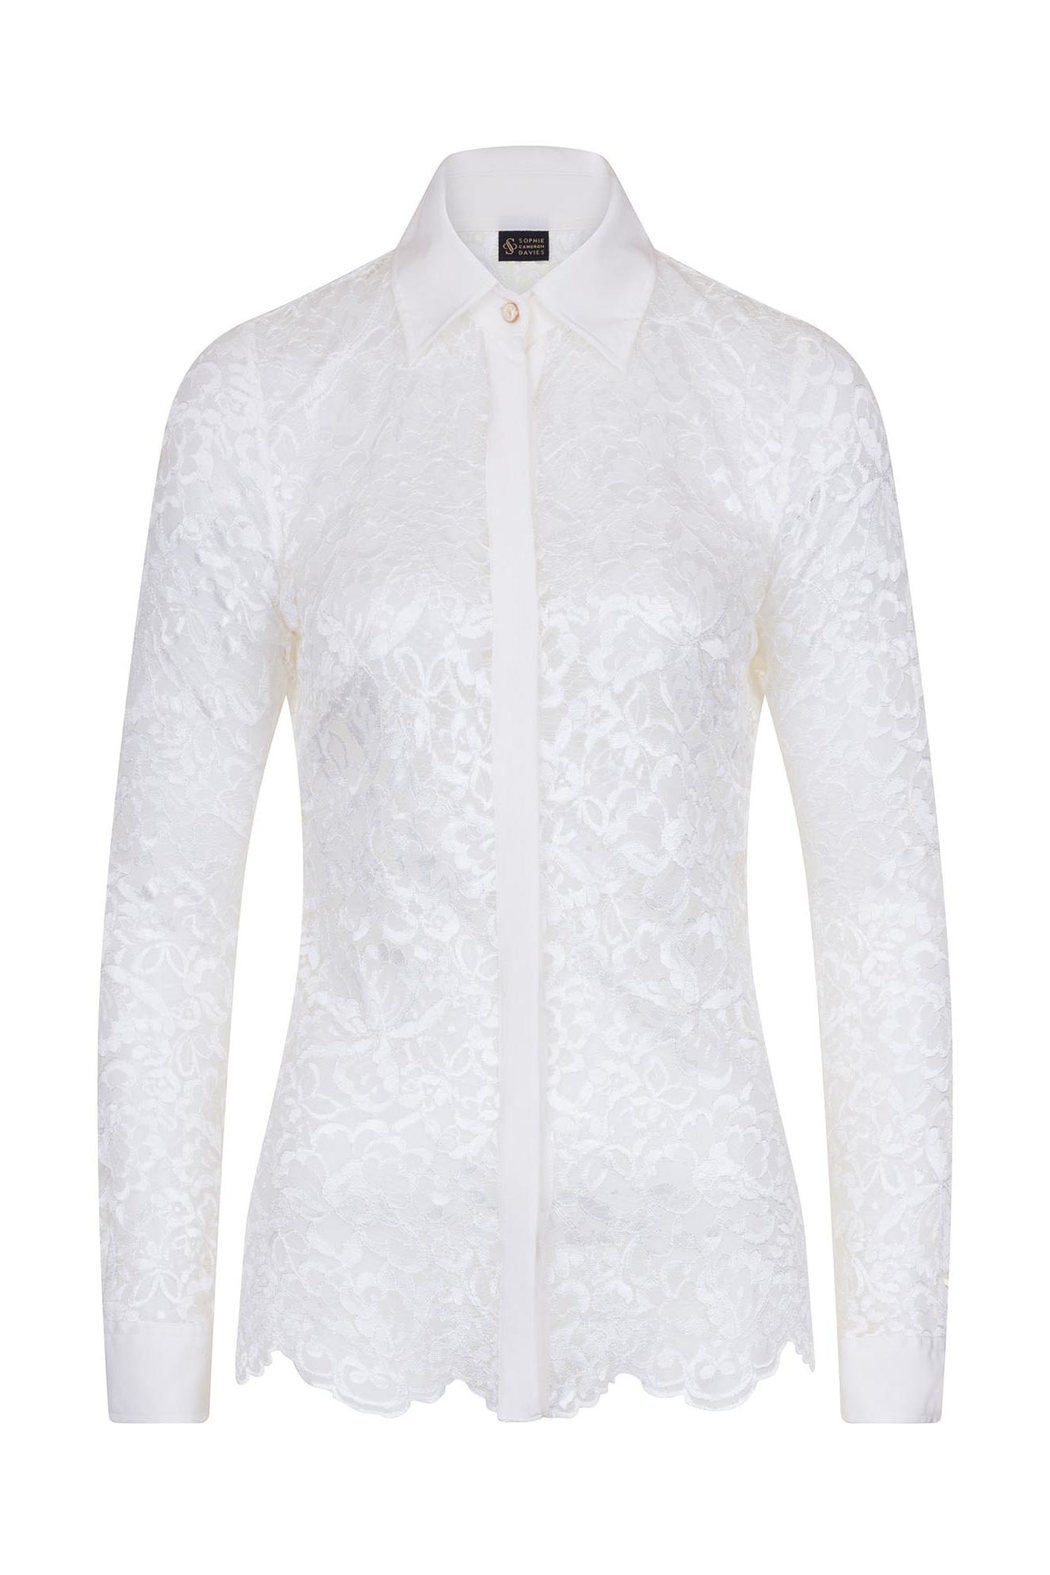 Sophie Cameron Davies Lace Shirt - Front Full Image